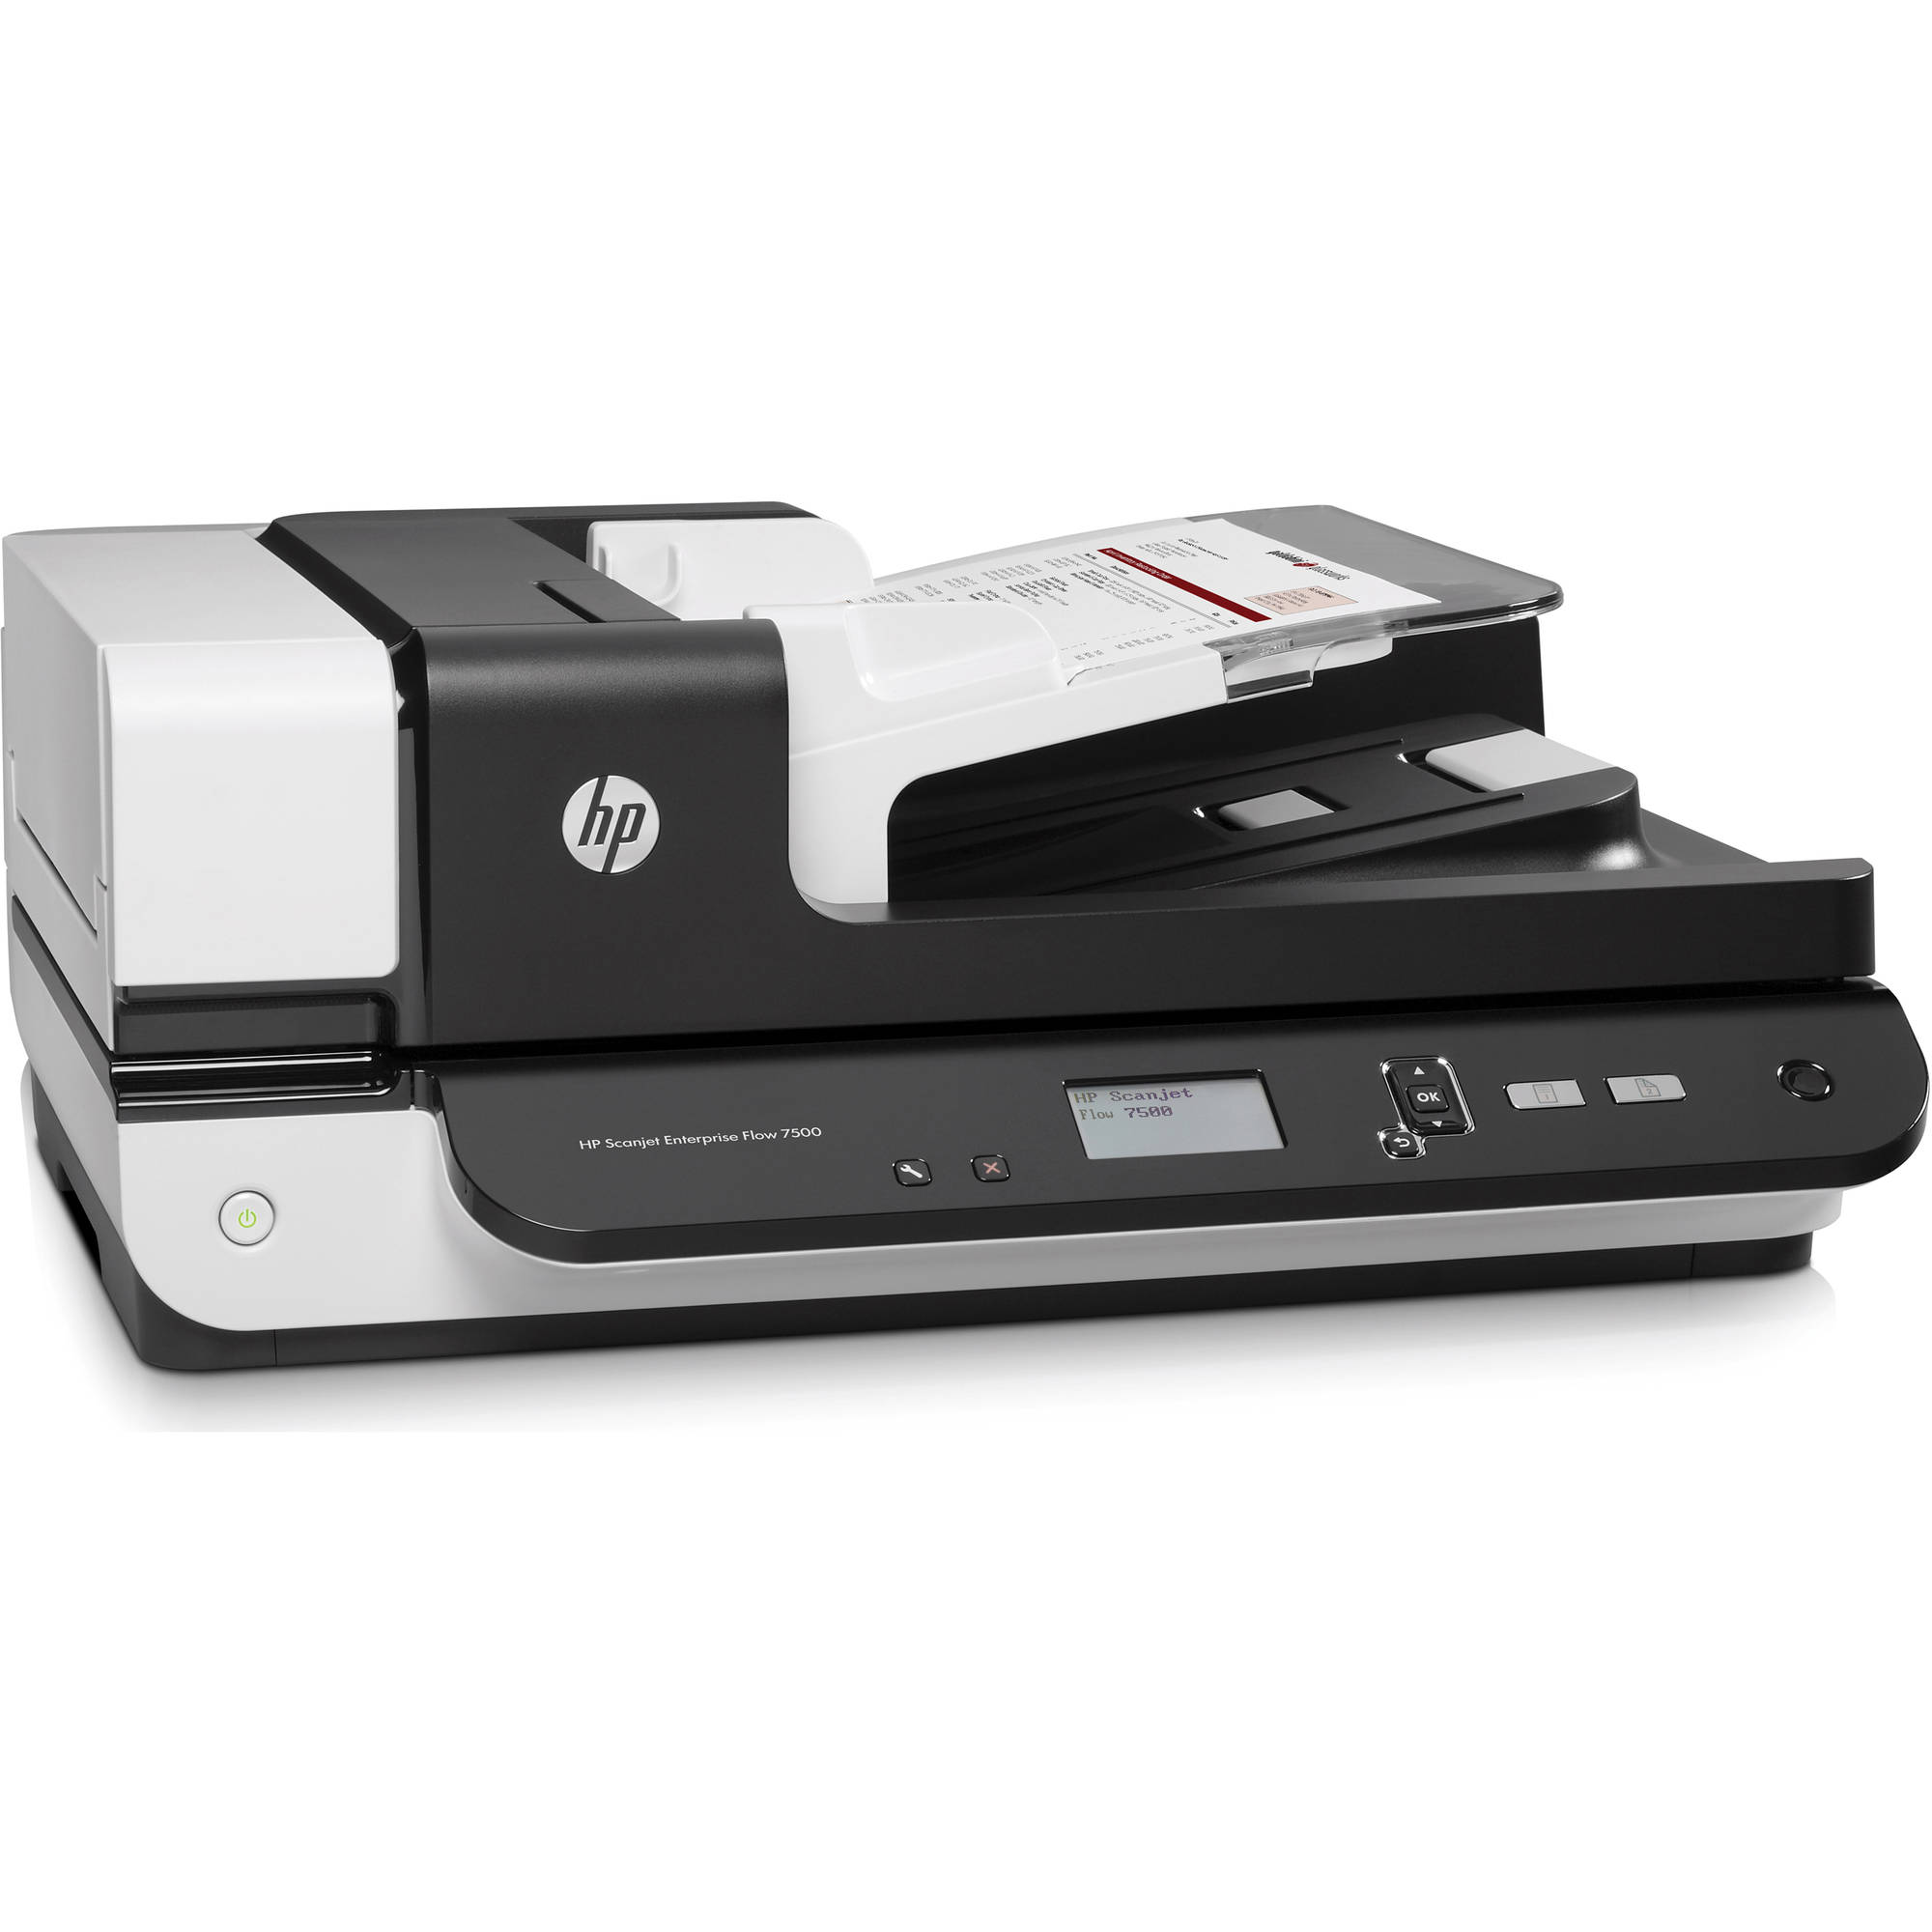 NEW DRIVERS: HP SCANJET 6P